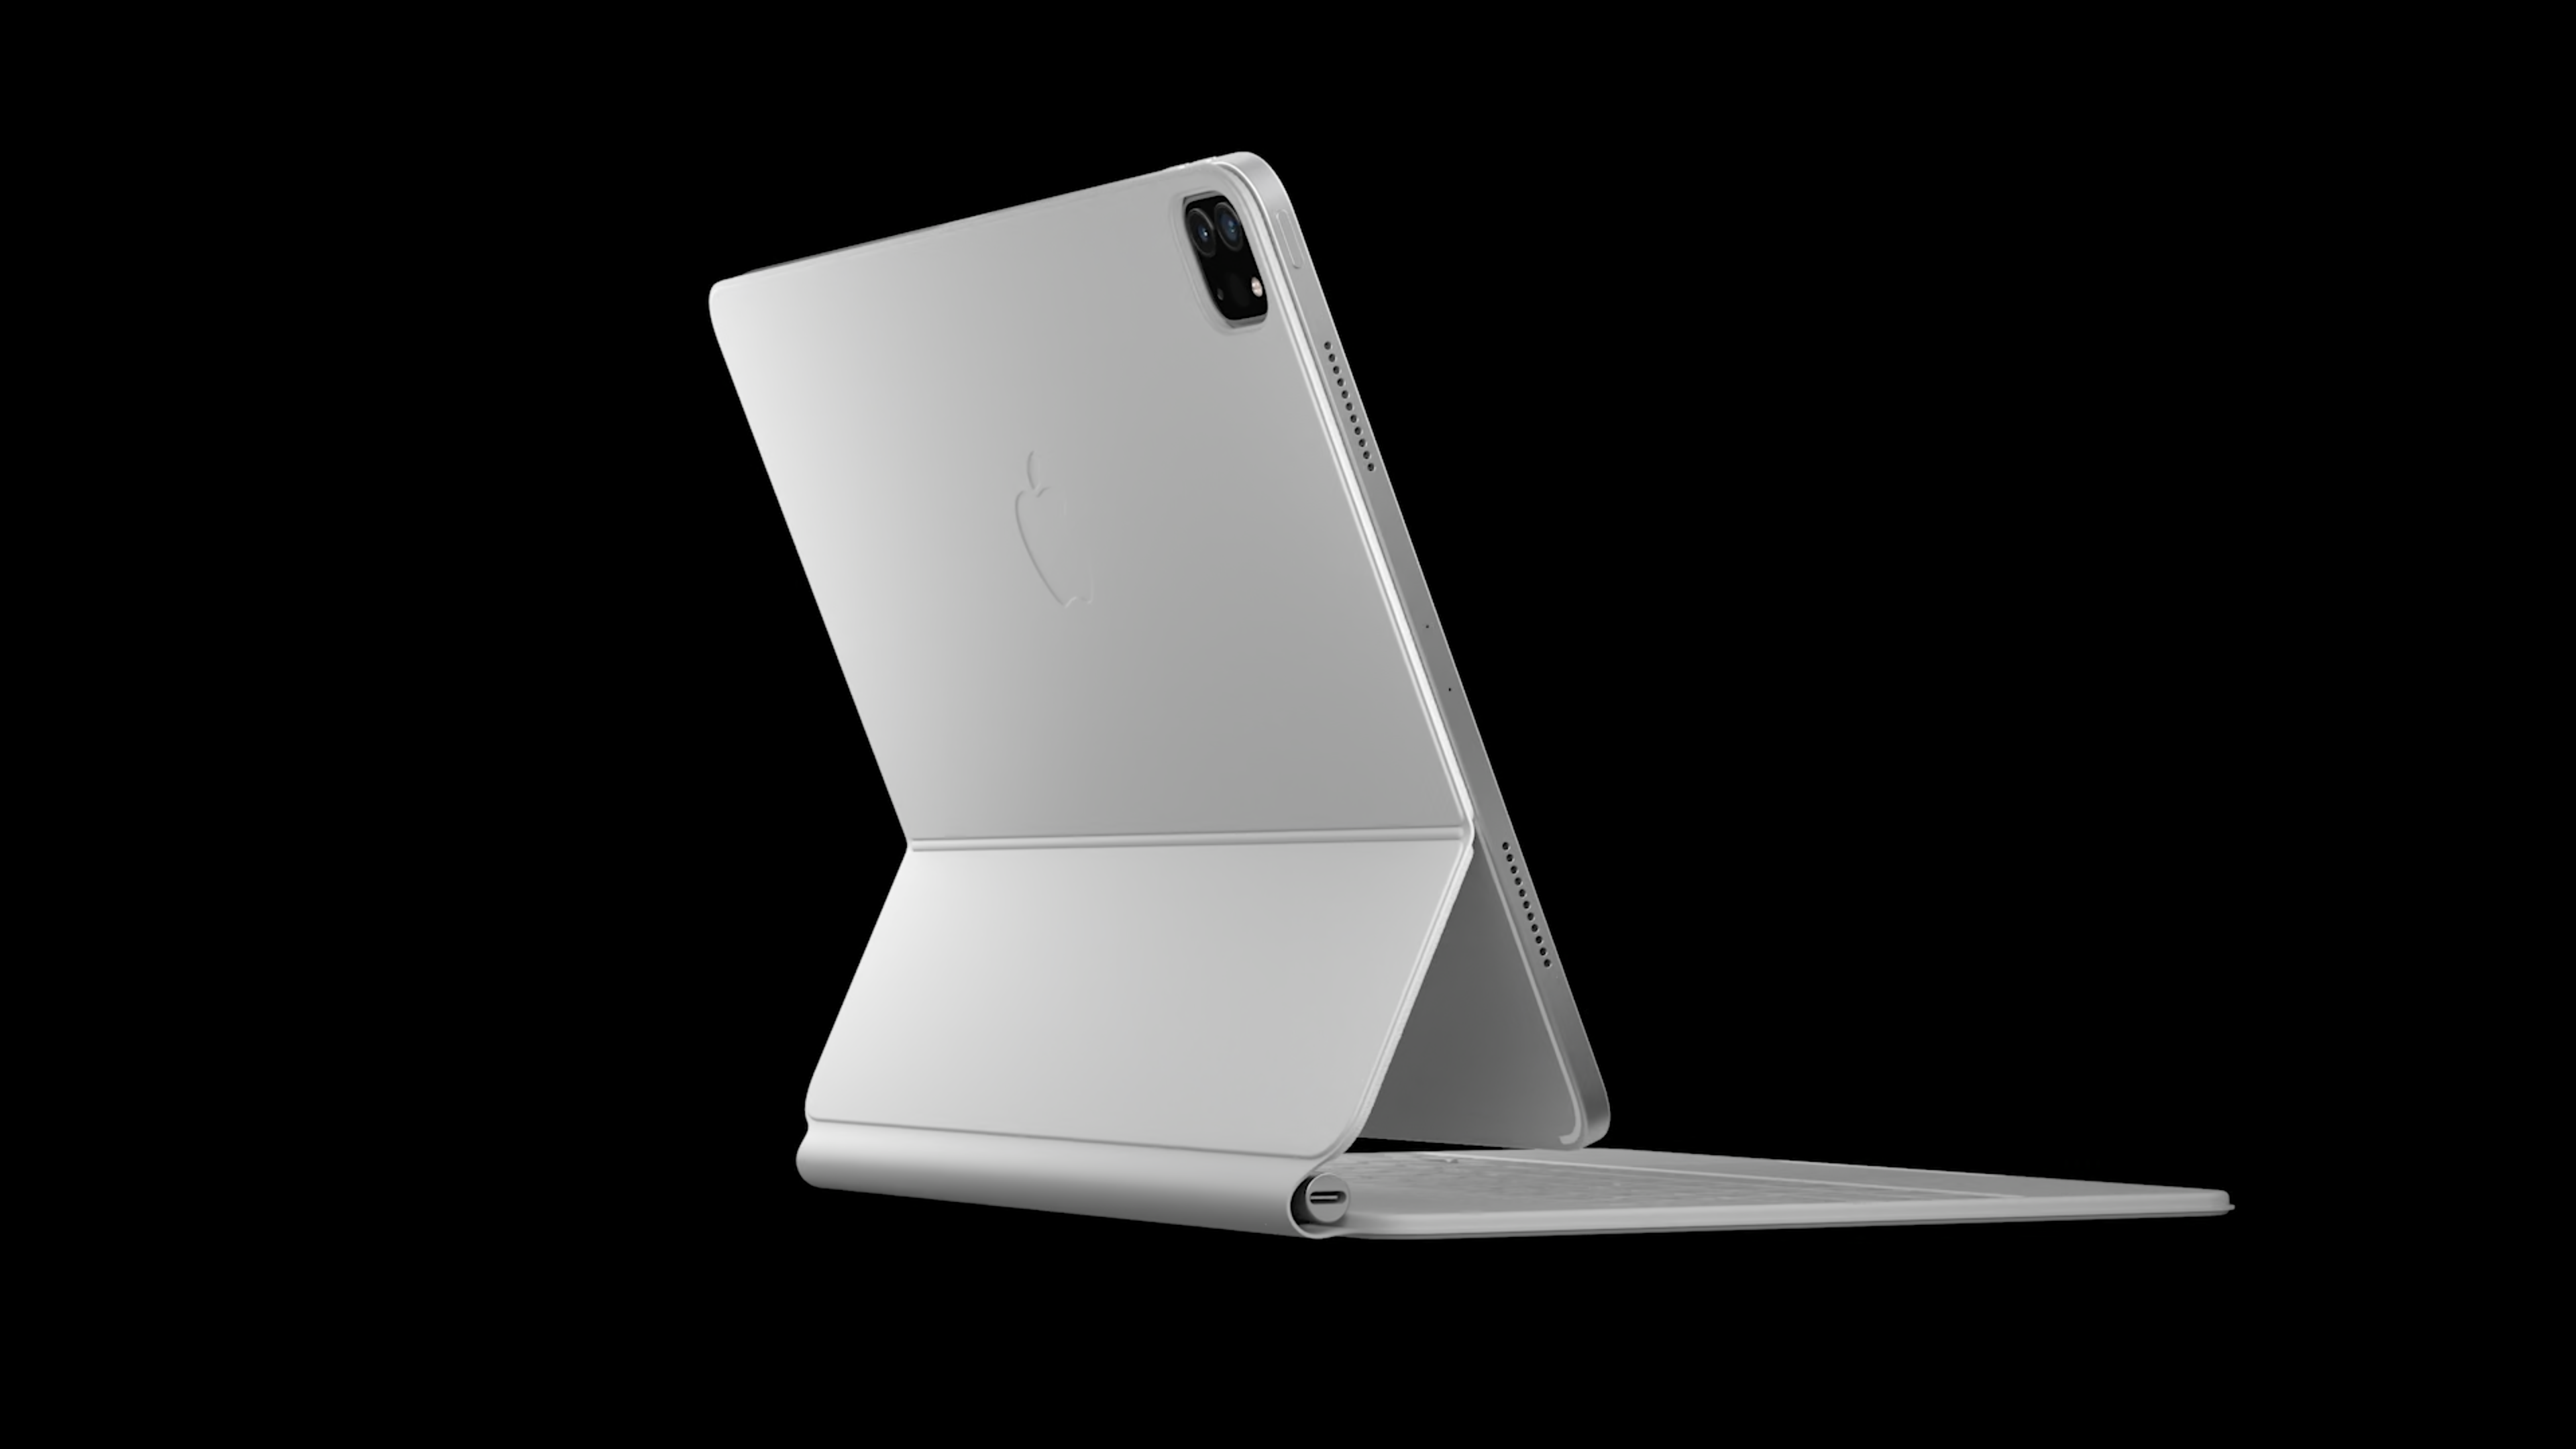 007-ipad-pro-2021-m1-announced.png